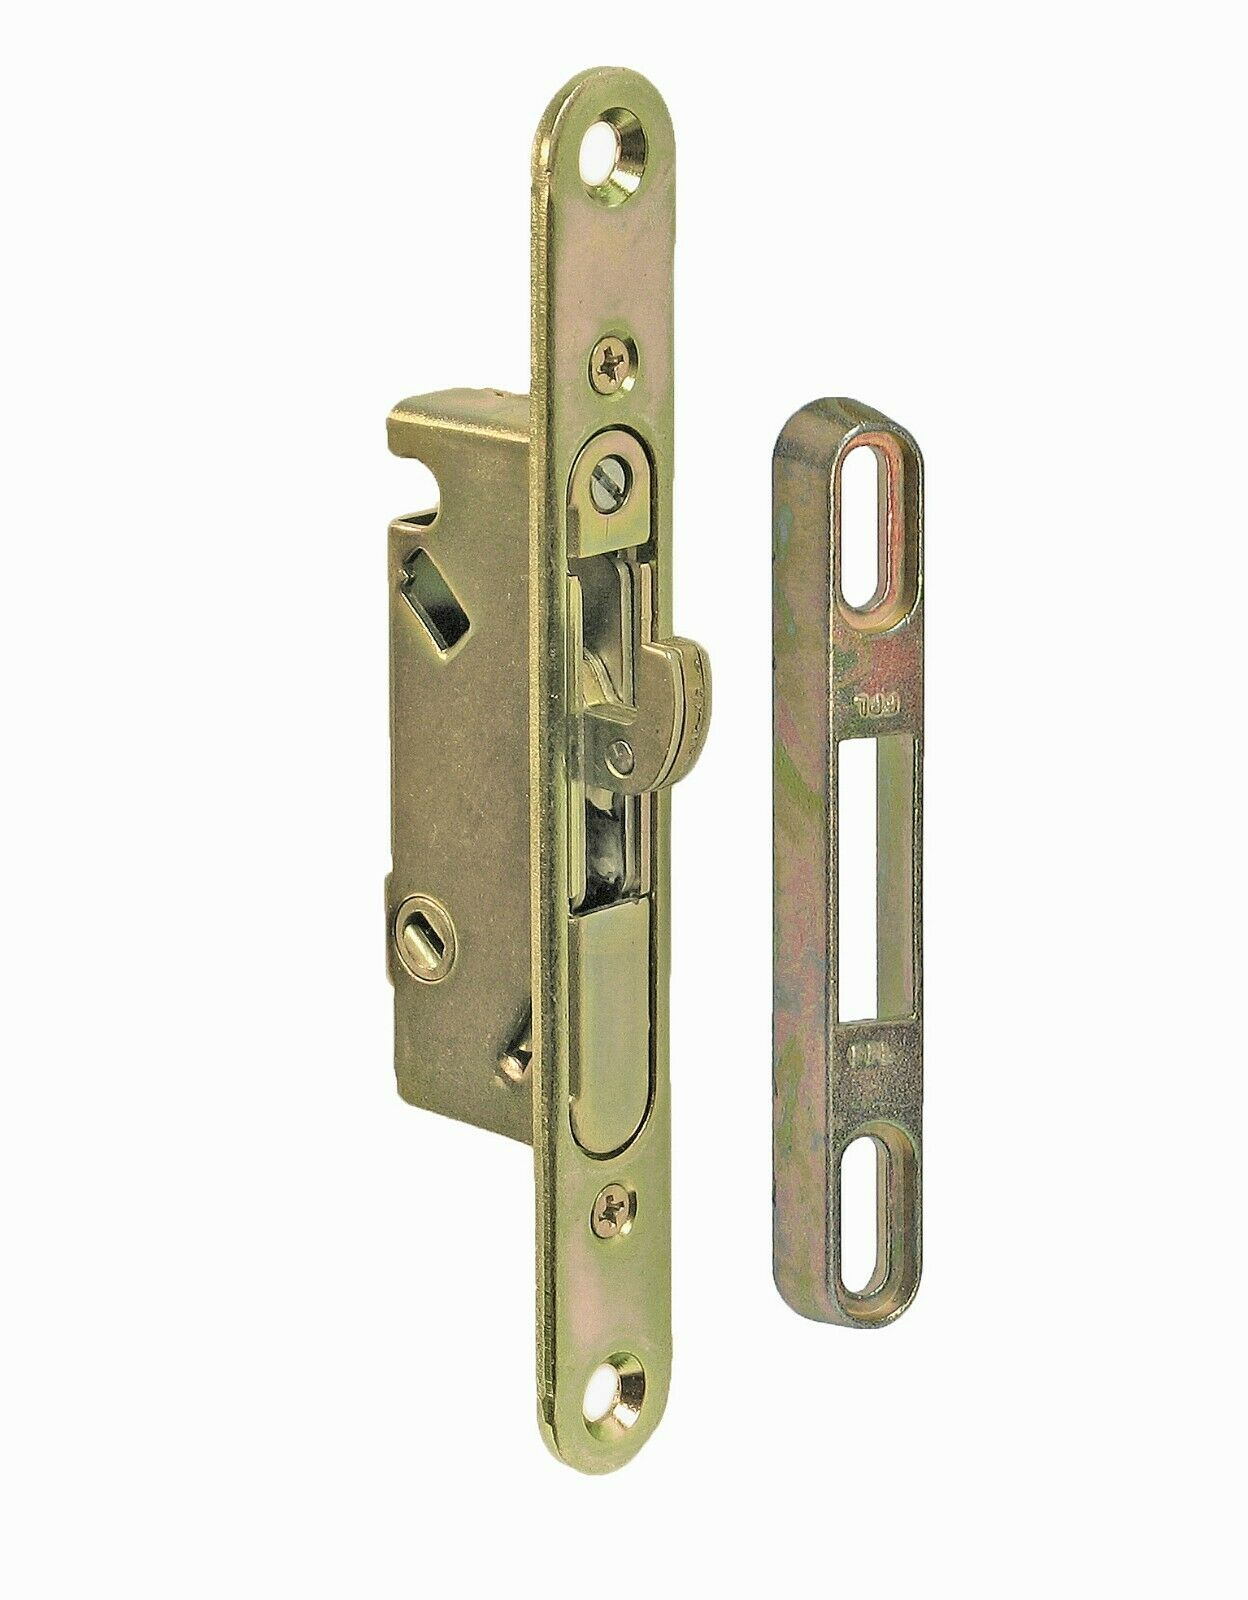 Replacement Sliding Glass Patio Door Mortise Lock And Keeper Kit